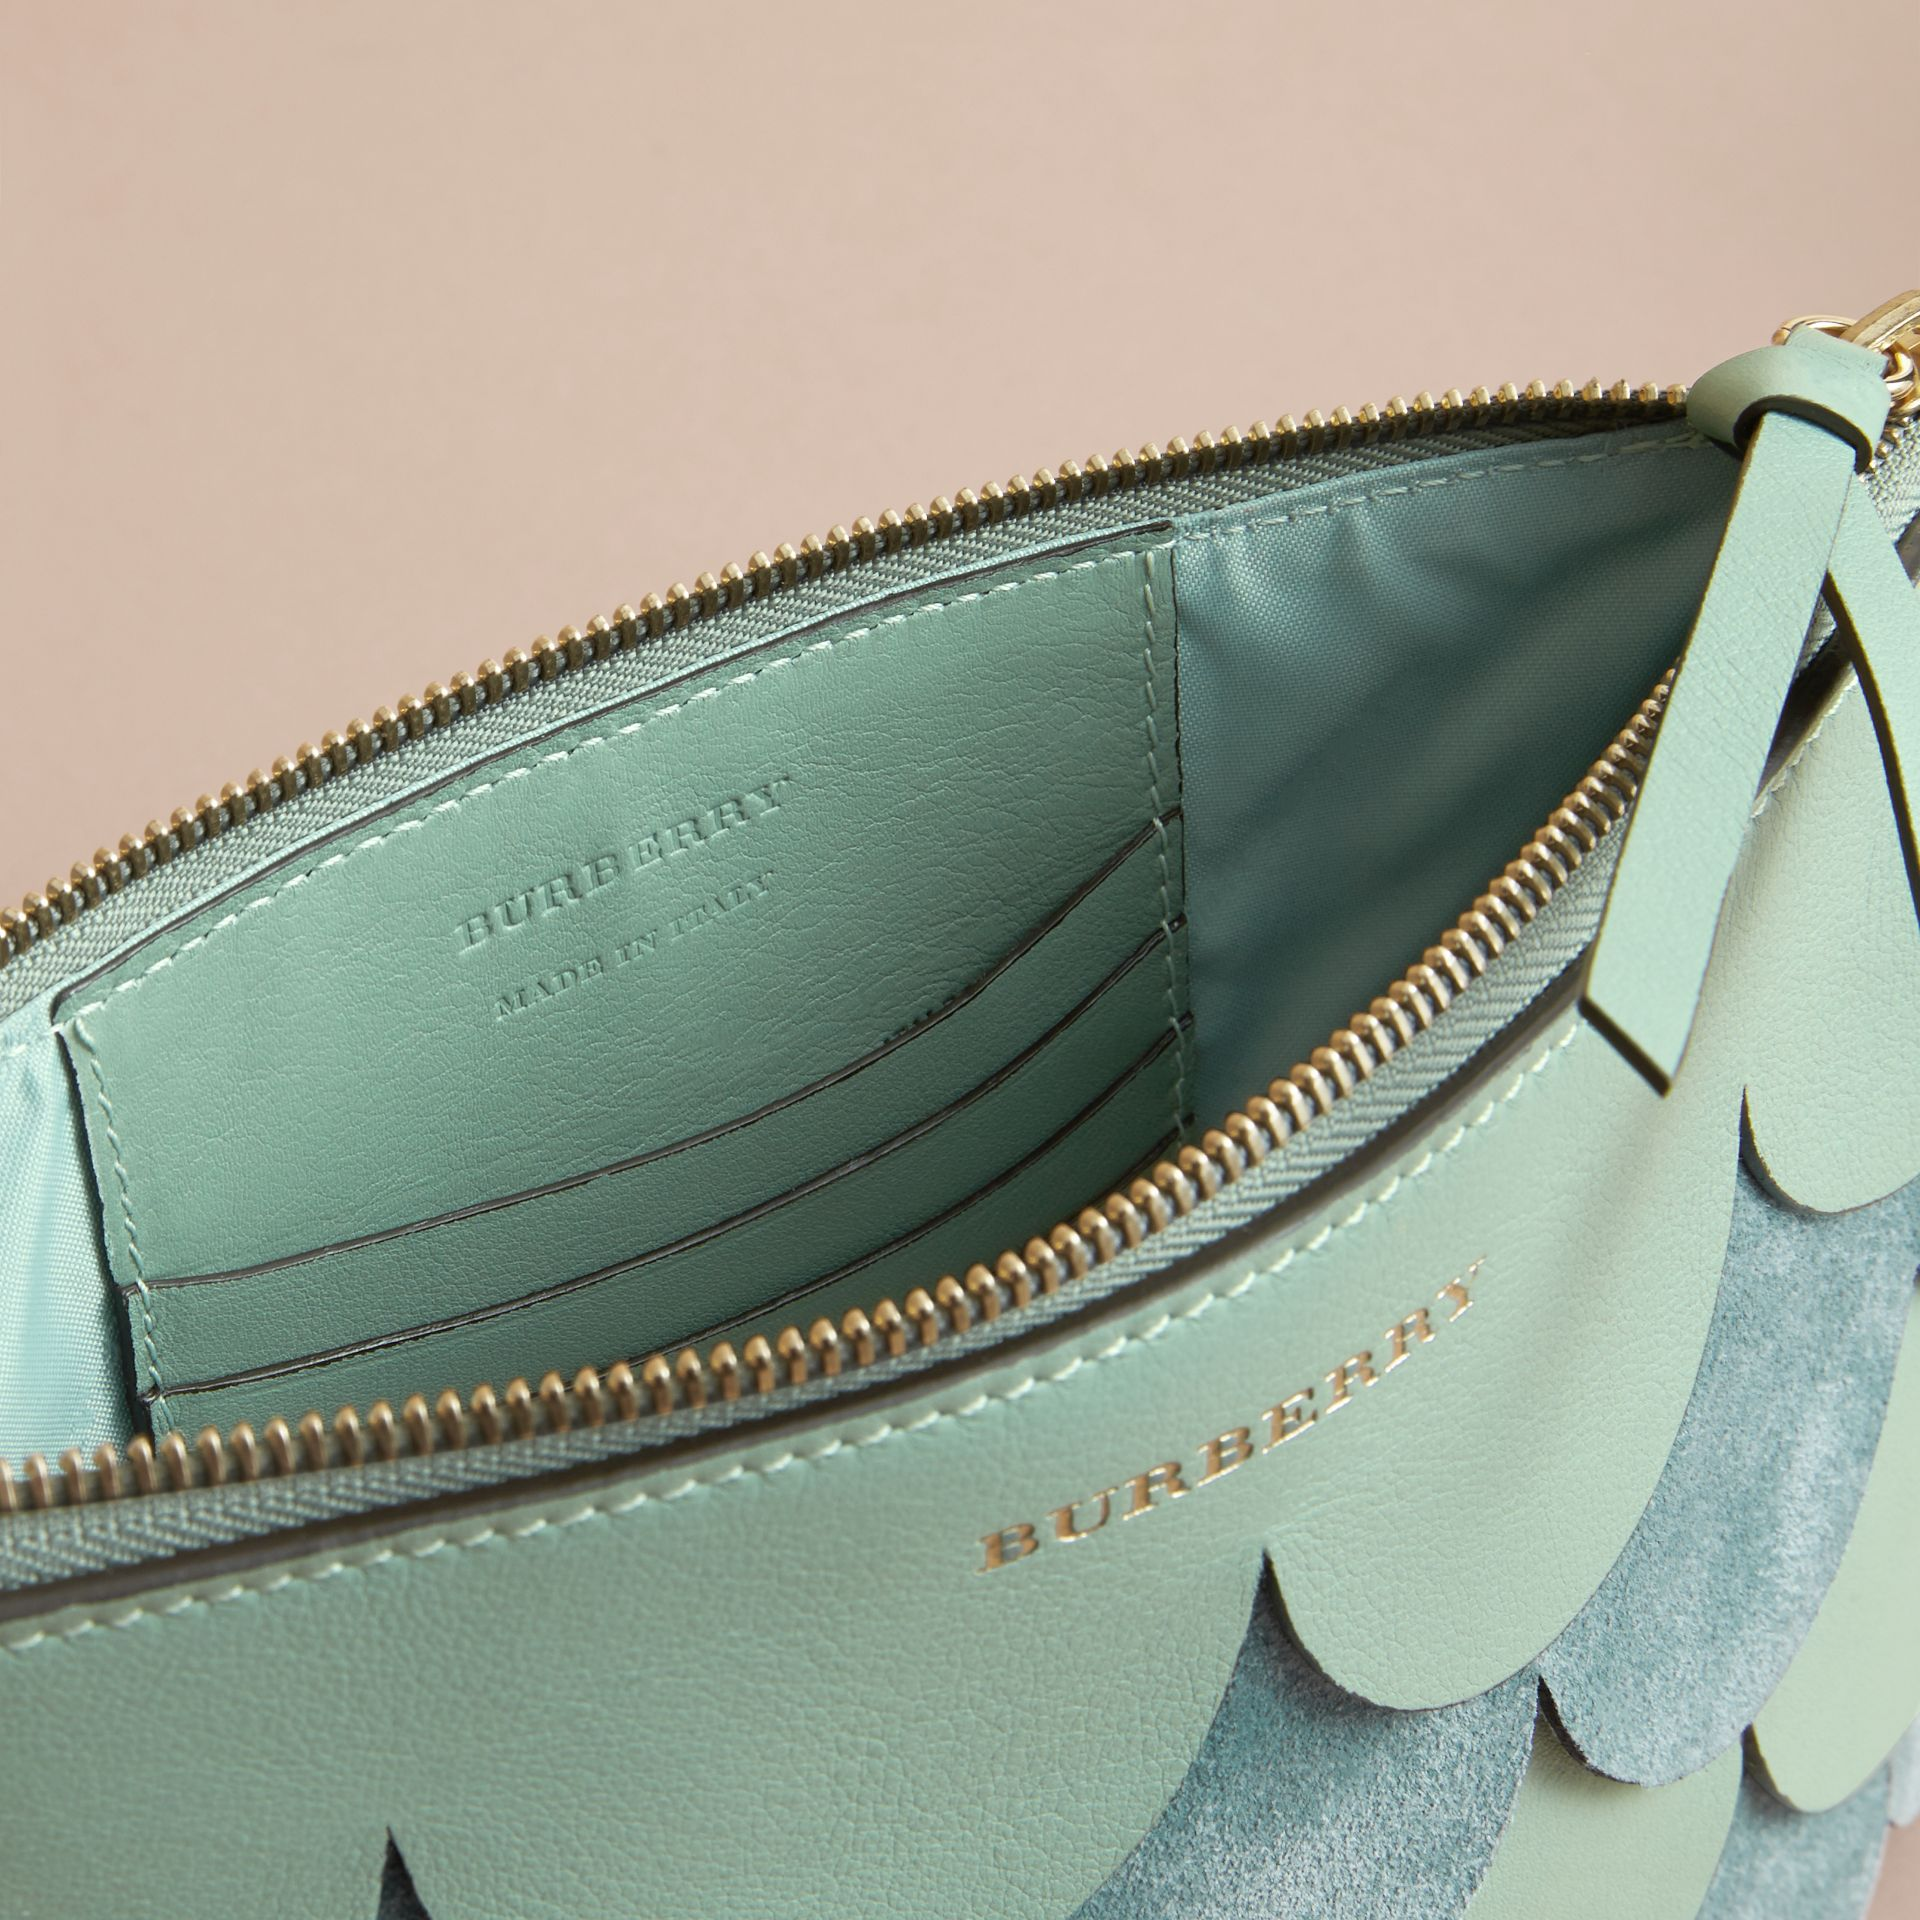 Two-tone Scalloped Leather and Suede Clutch Bag in Celadon Green - Women | Burberry Australia - gallery image 6